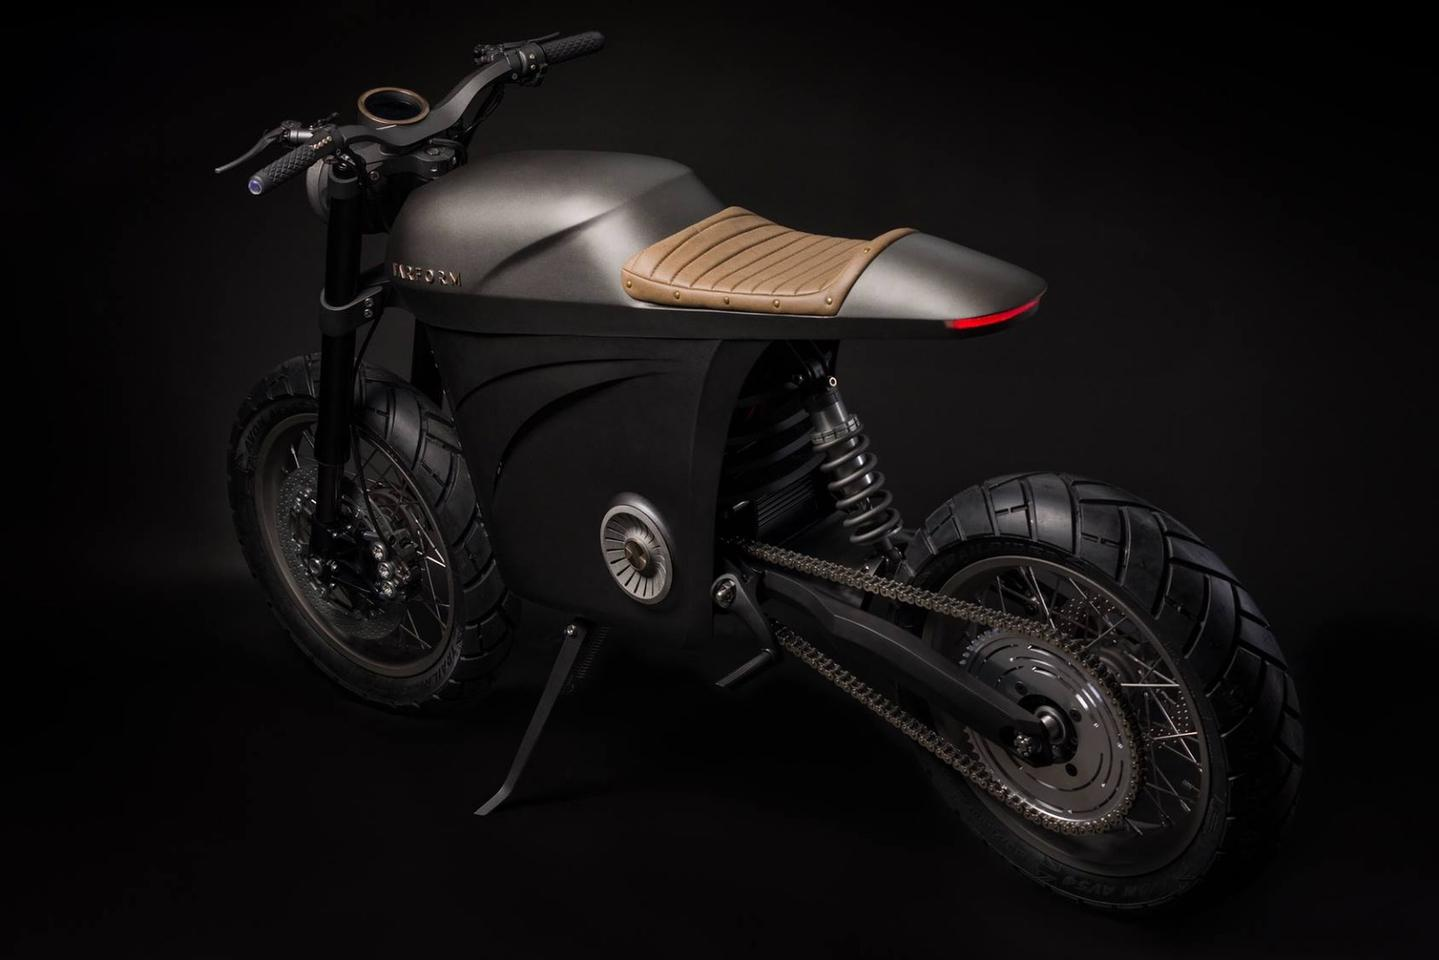 Tarform electric scrambler: an elegant design